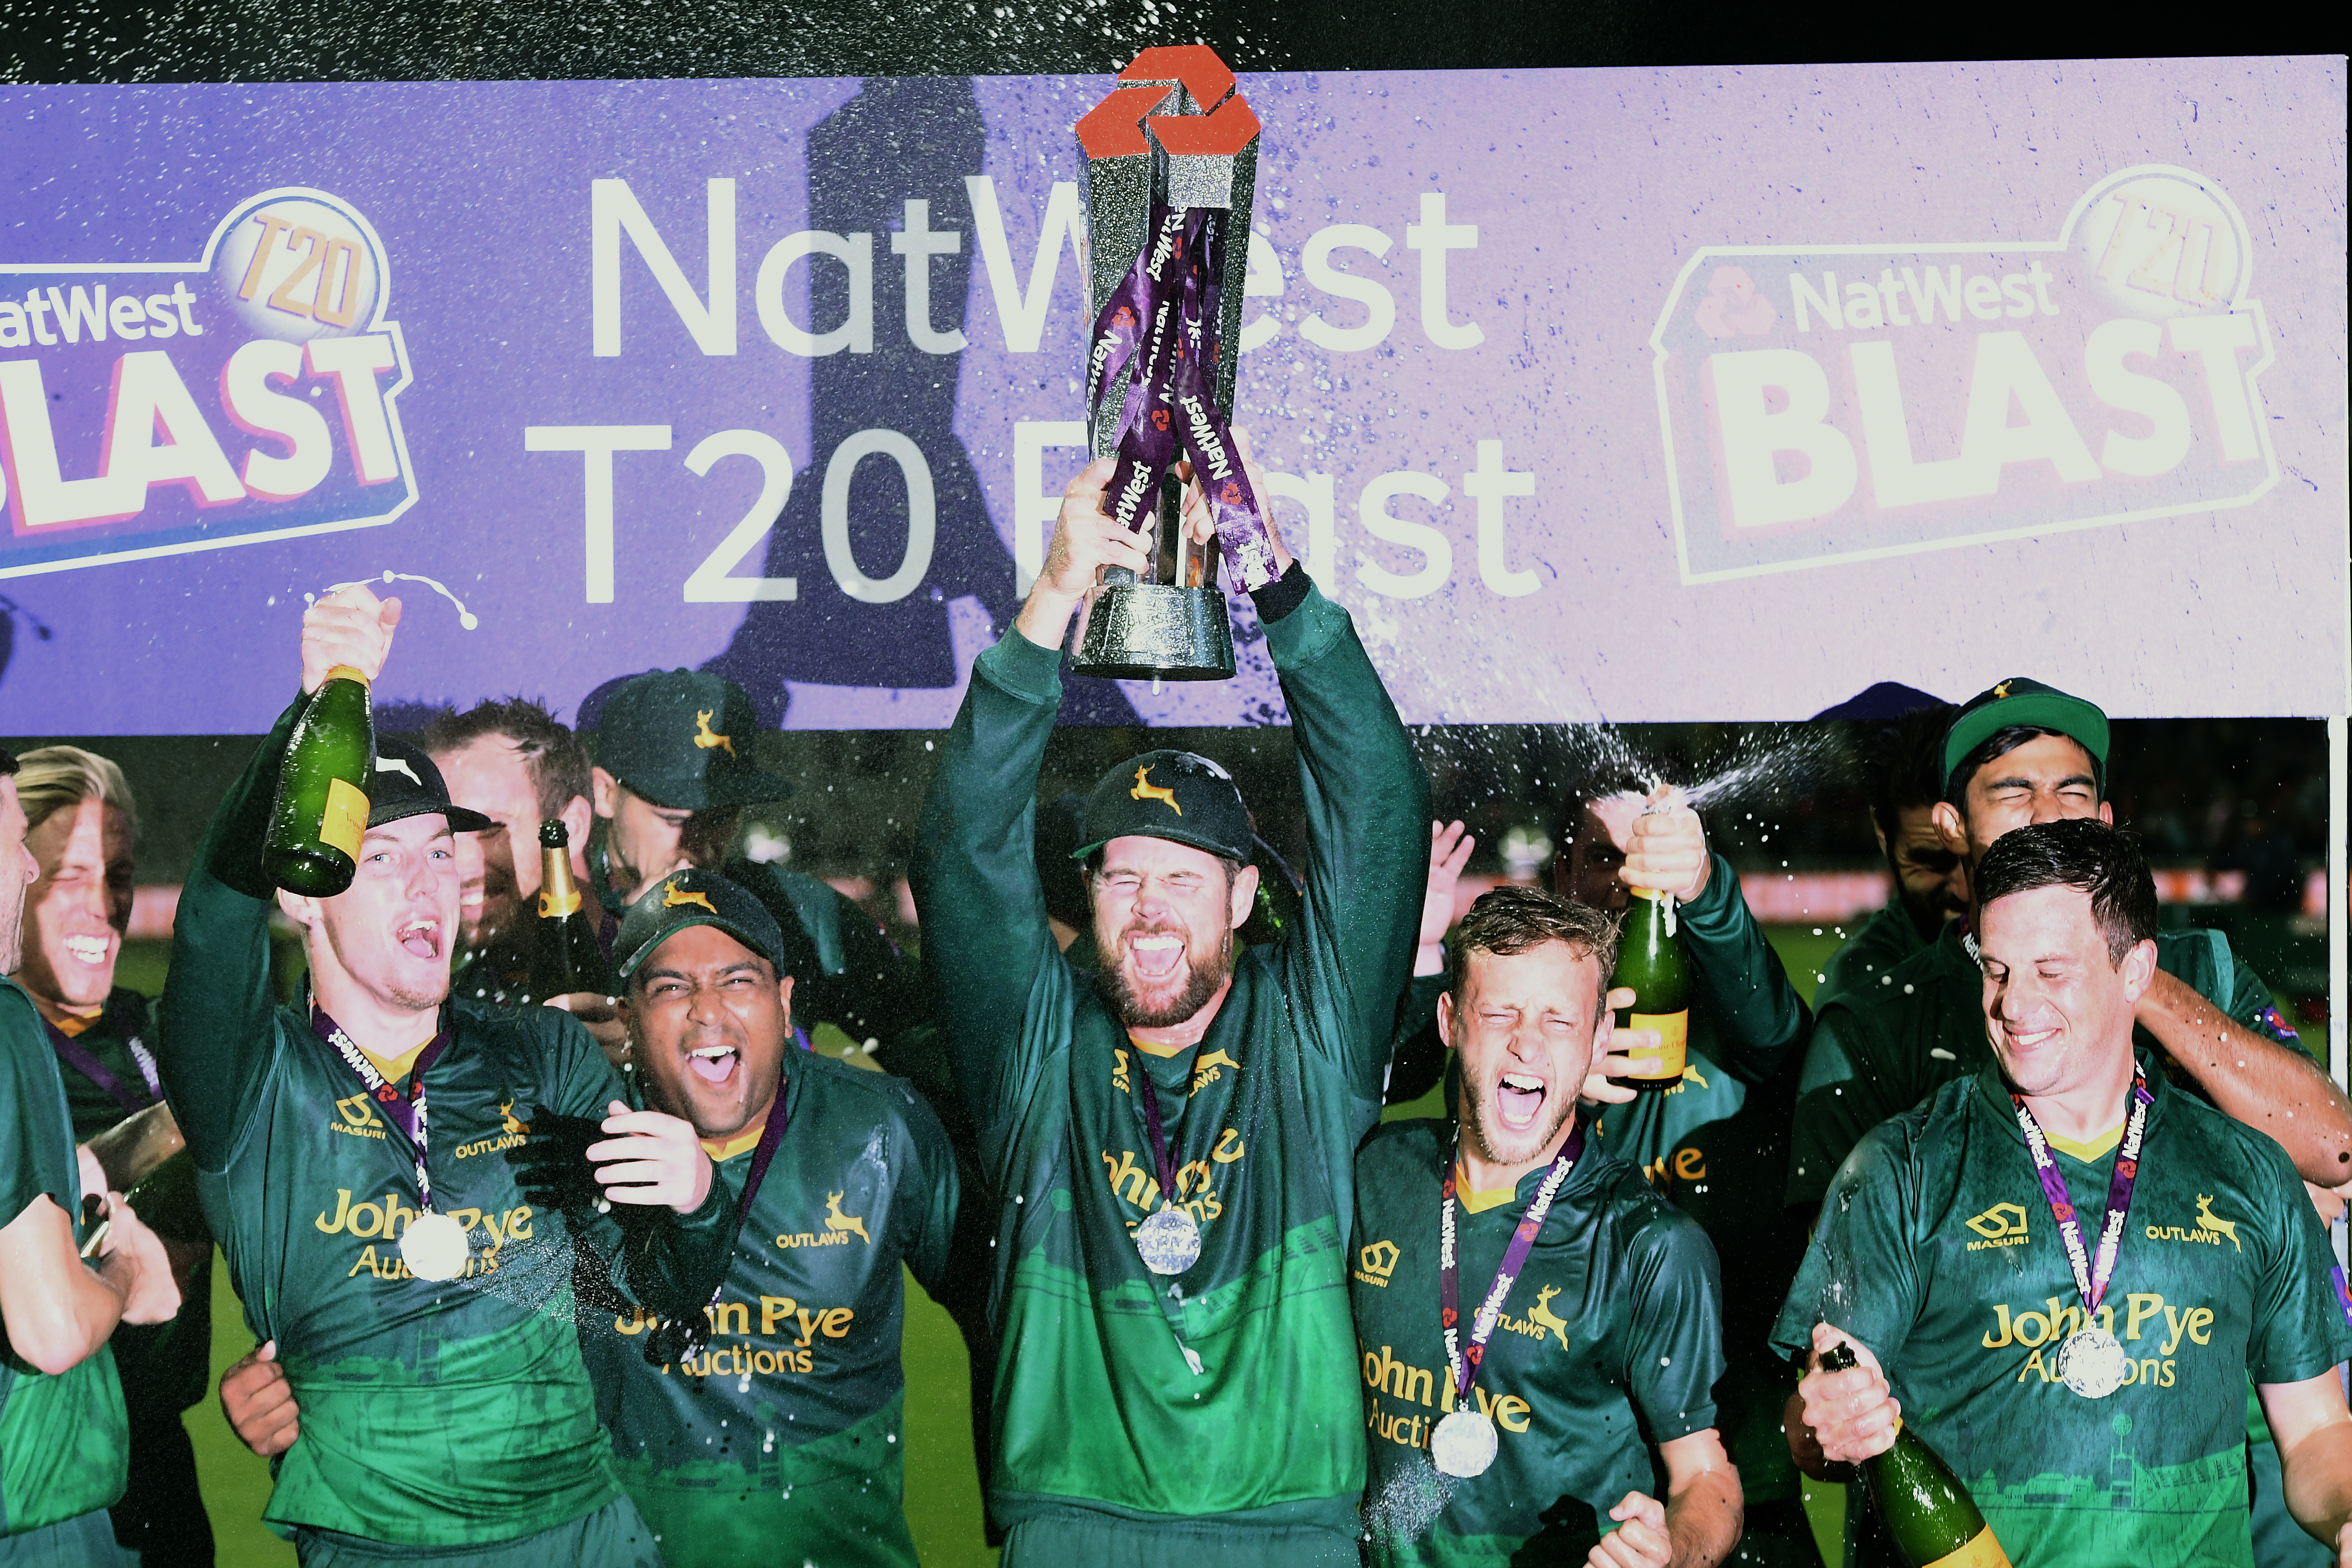 The five most spectacular T20 Blast matches in history